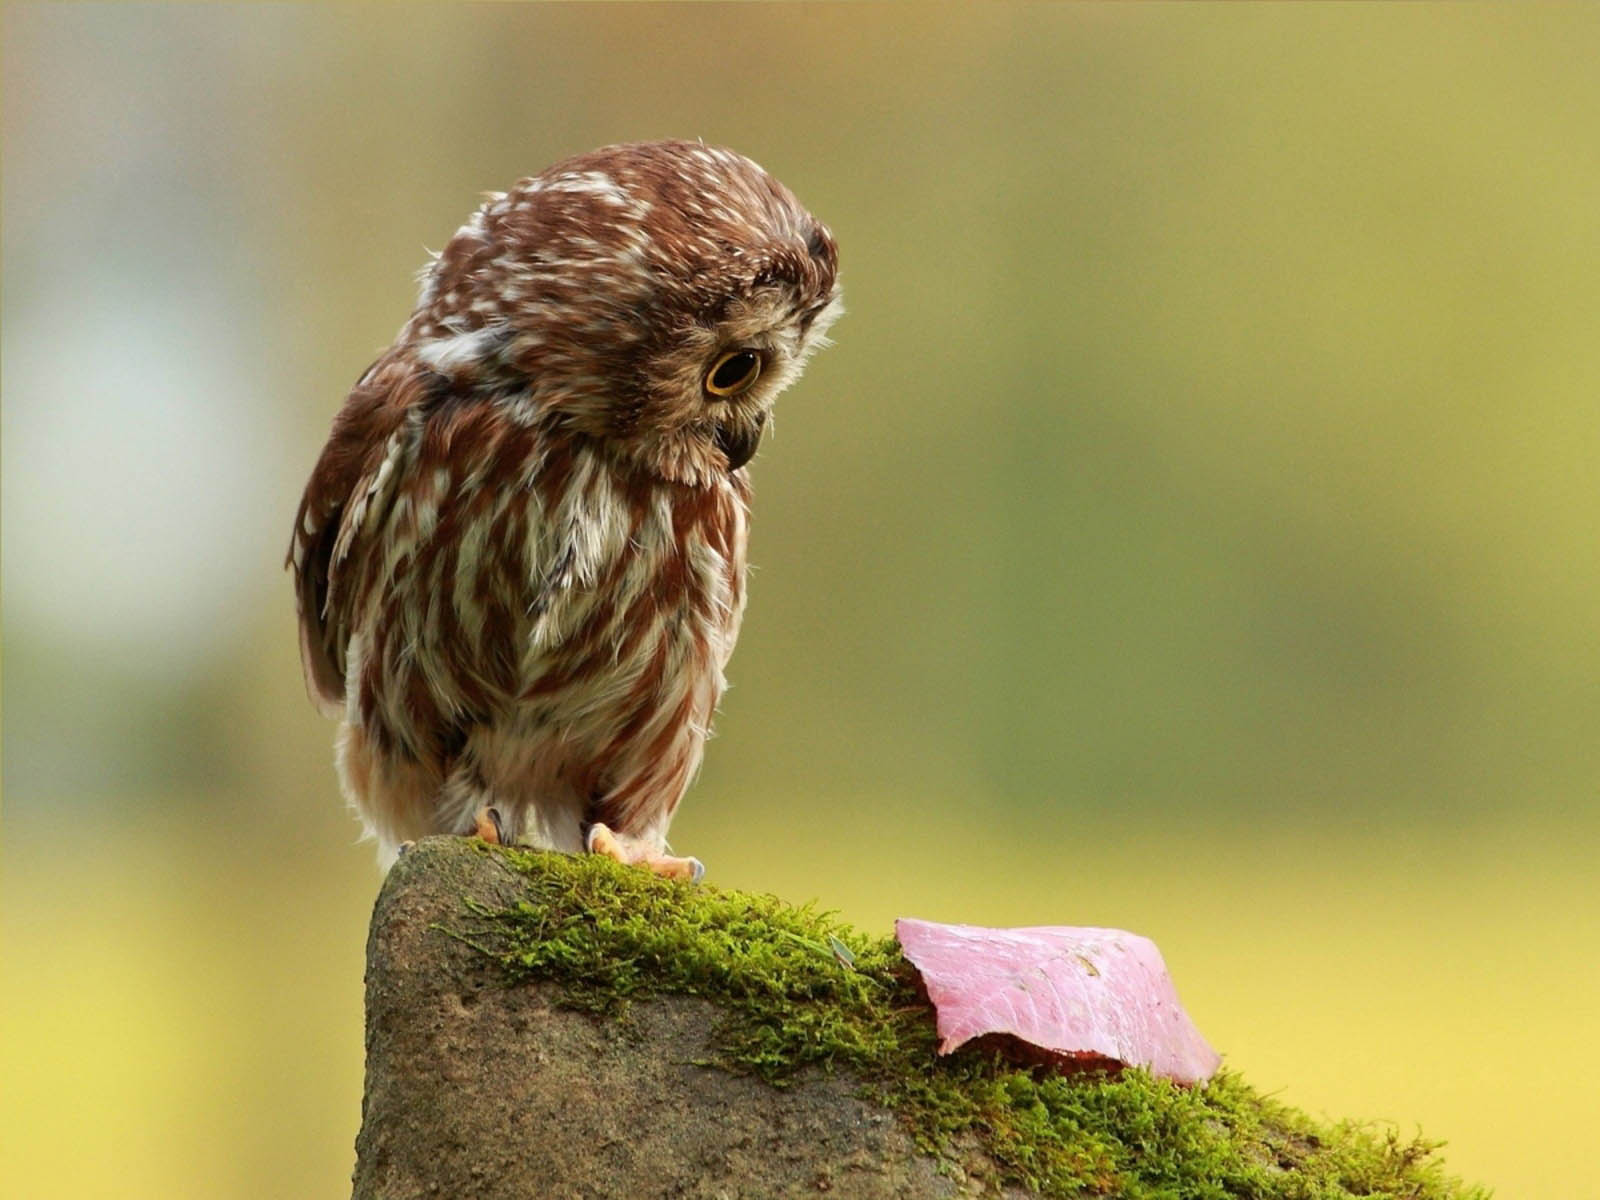 Owl Wallpapers Images Photos Pictures and Backgrounds for 1600x1200